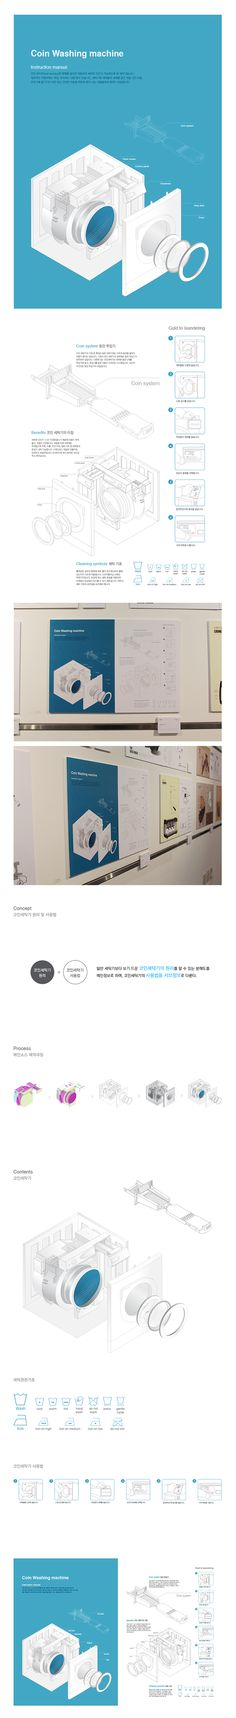 류혜수│ Information Design 2014│ Dept. of Digital Media Design │#hicoda │hicoda.hongik.ac.kr